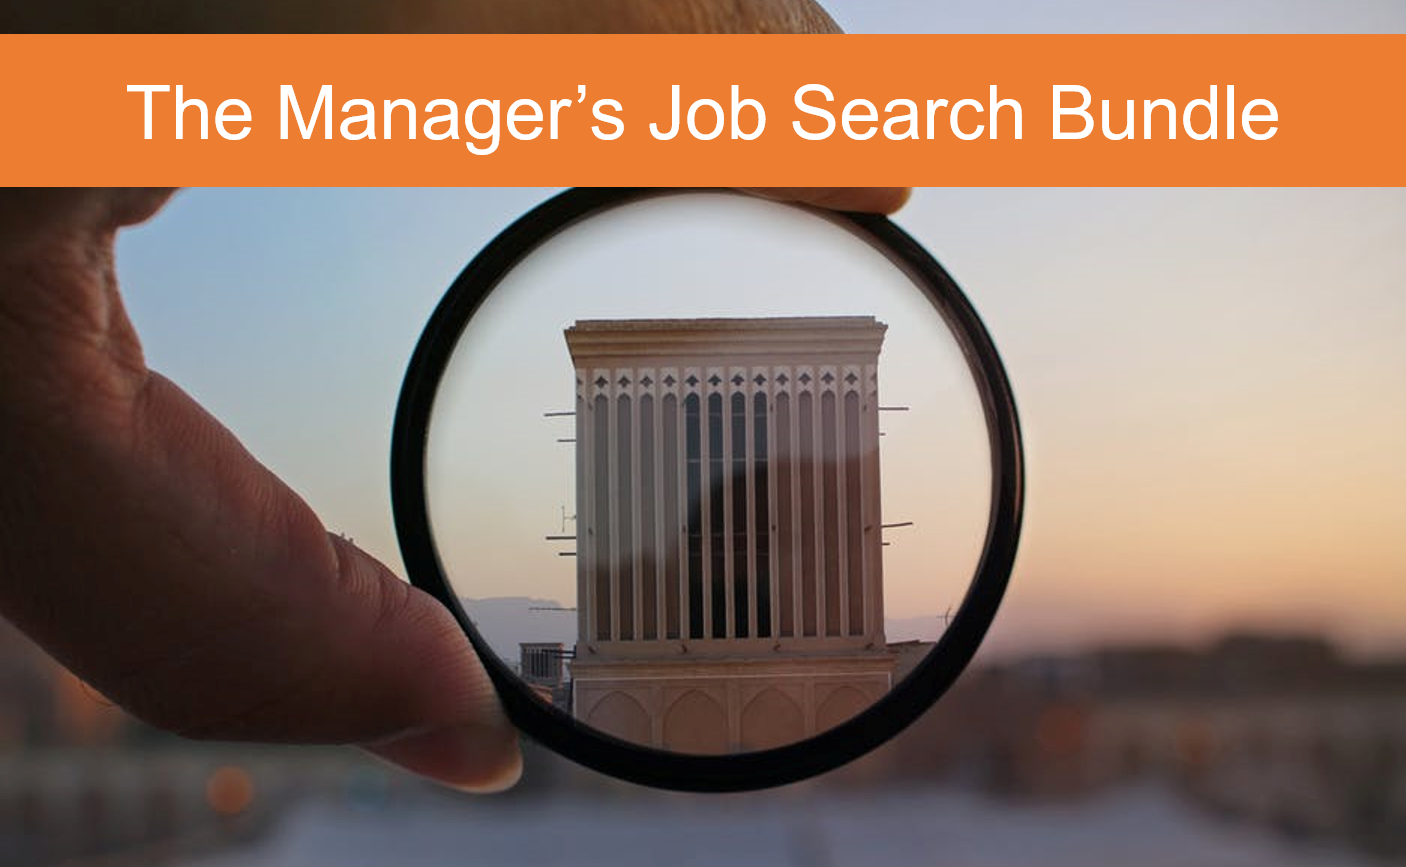 managers job search bundle.png